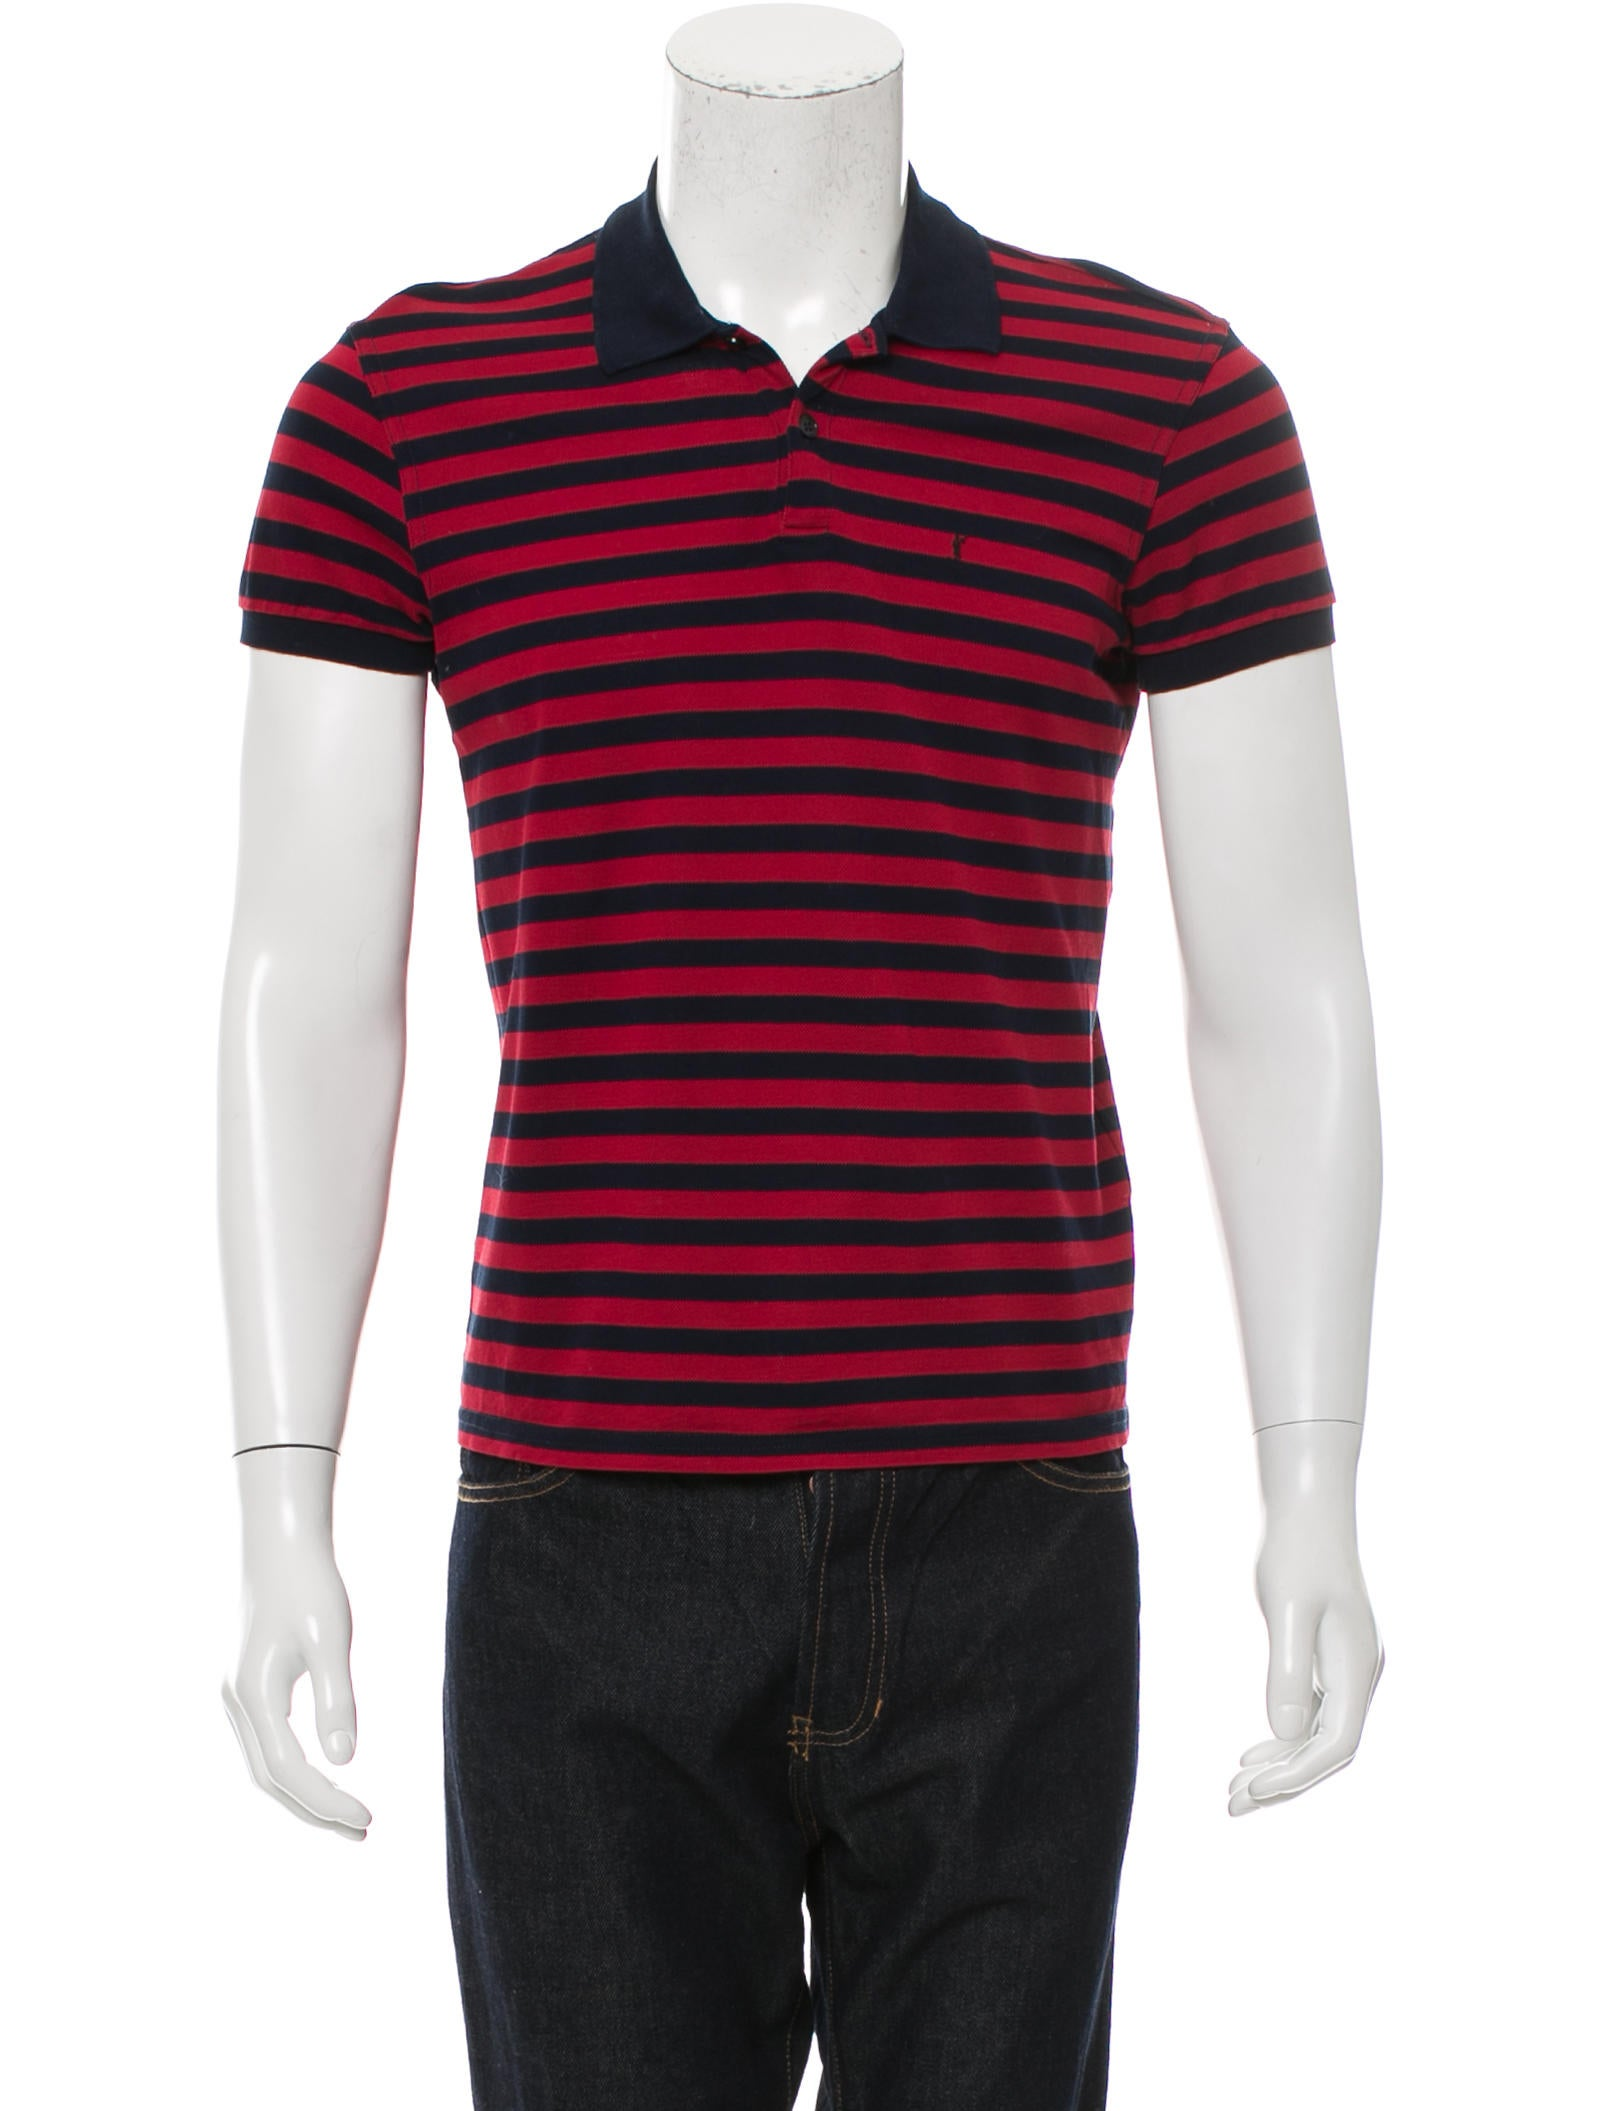 Saint laurent logo embroidered polo shirt clothing for Embroidered logos on shirts